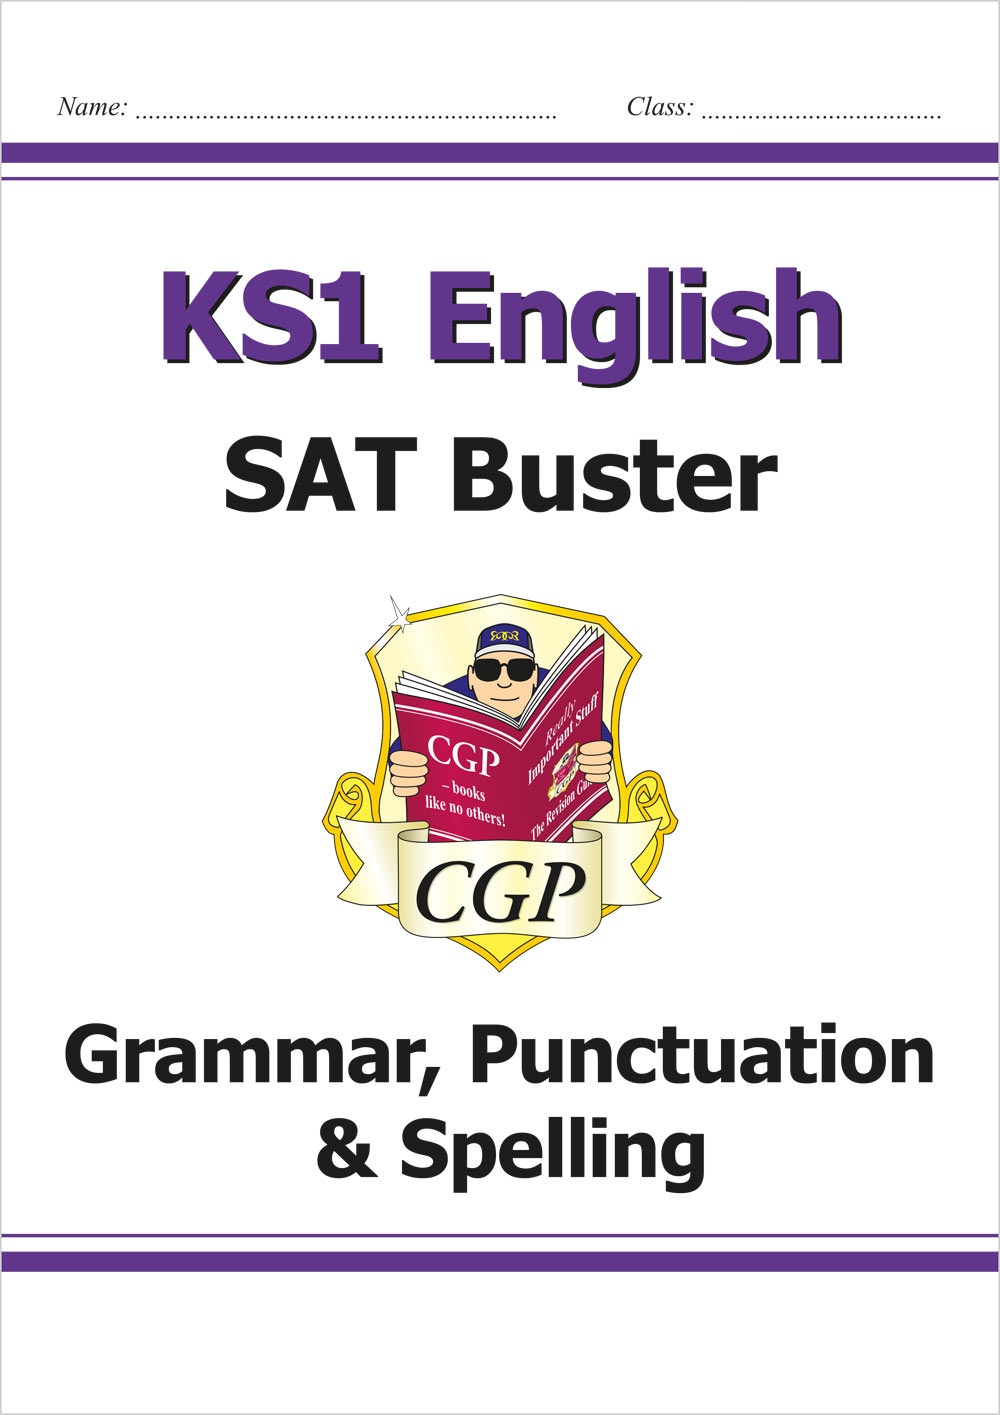 E2G11 - KS1 English SAT Buster: Grammar, Punctuation & Spelling (for the 2020 tests)